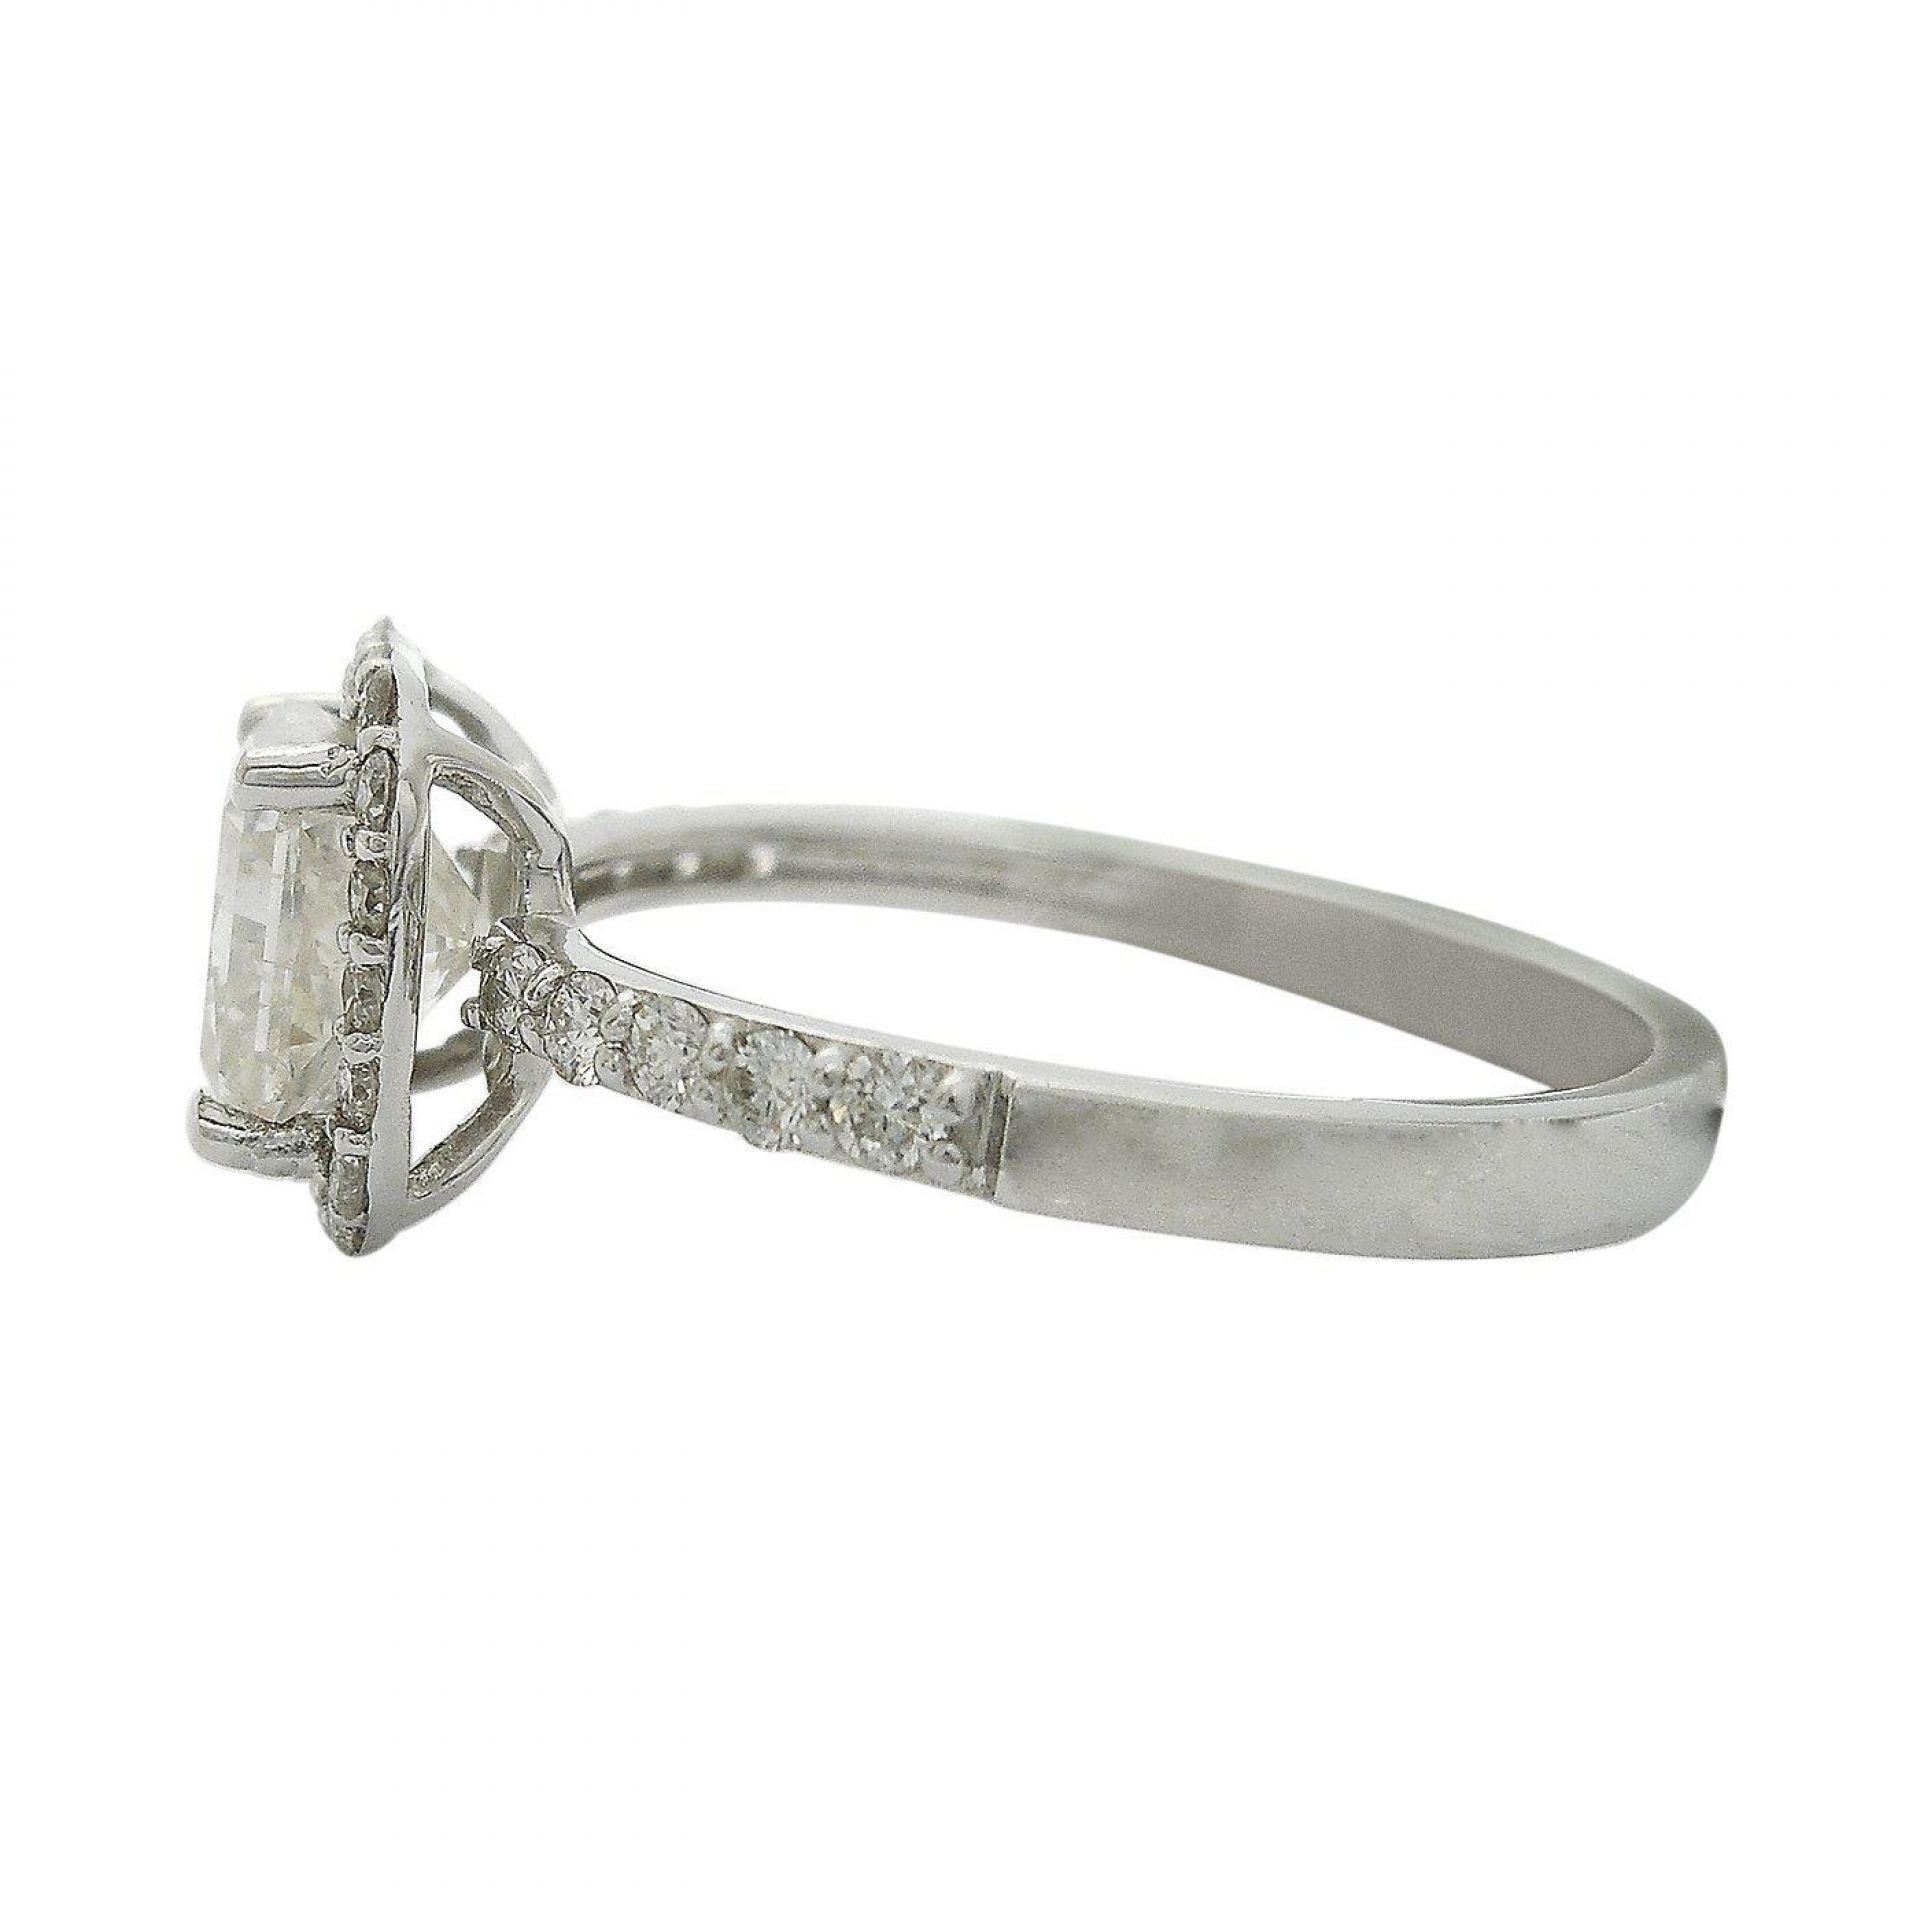 1.51ct CENTER Radiant Cut Diamond 18KT White Gold Ring (1.90ctw Diamonds)